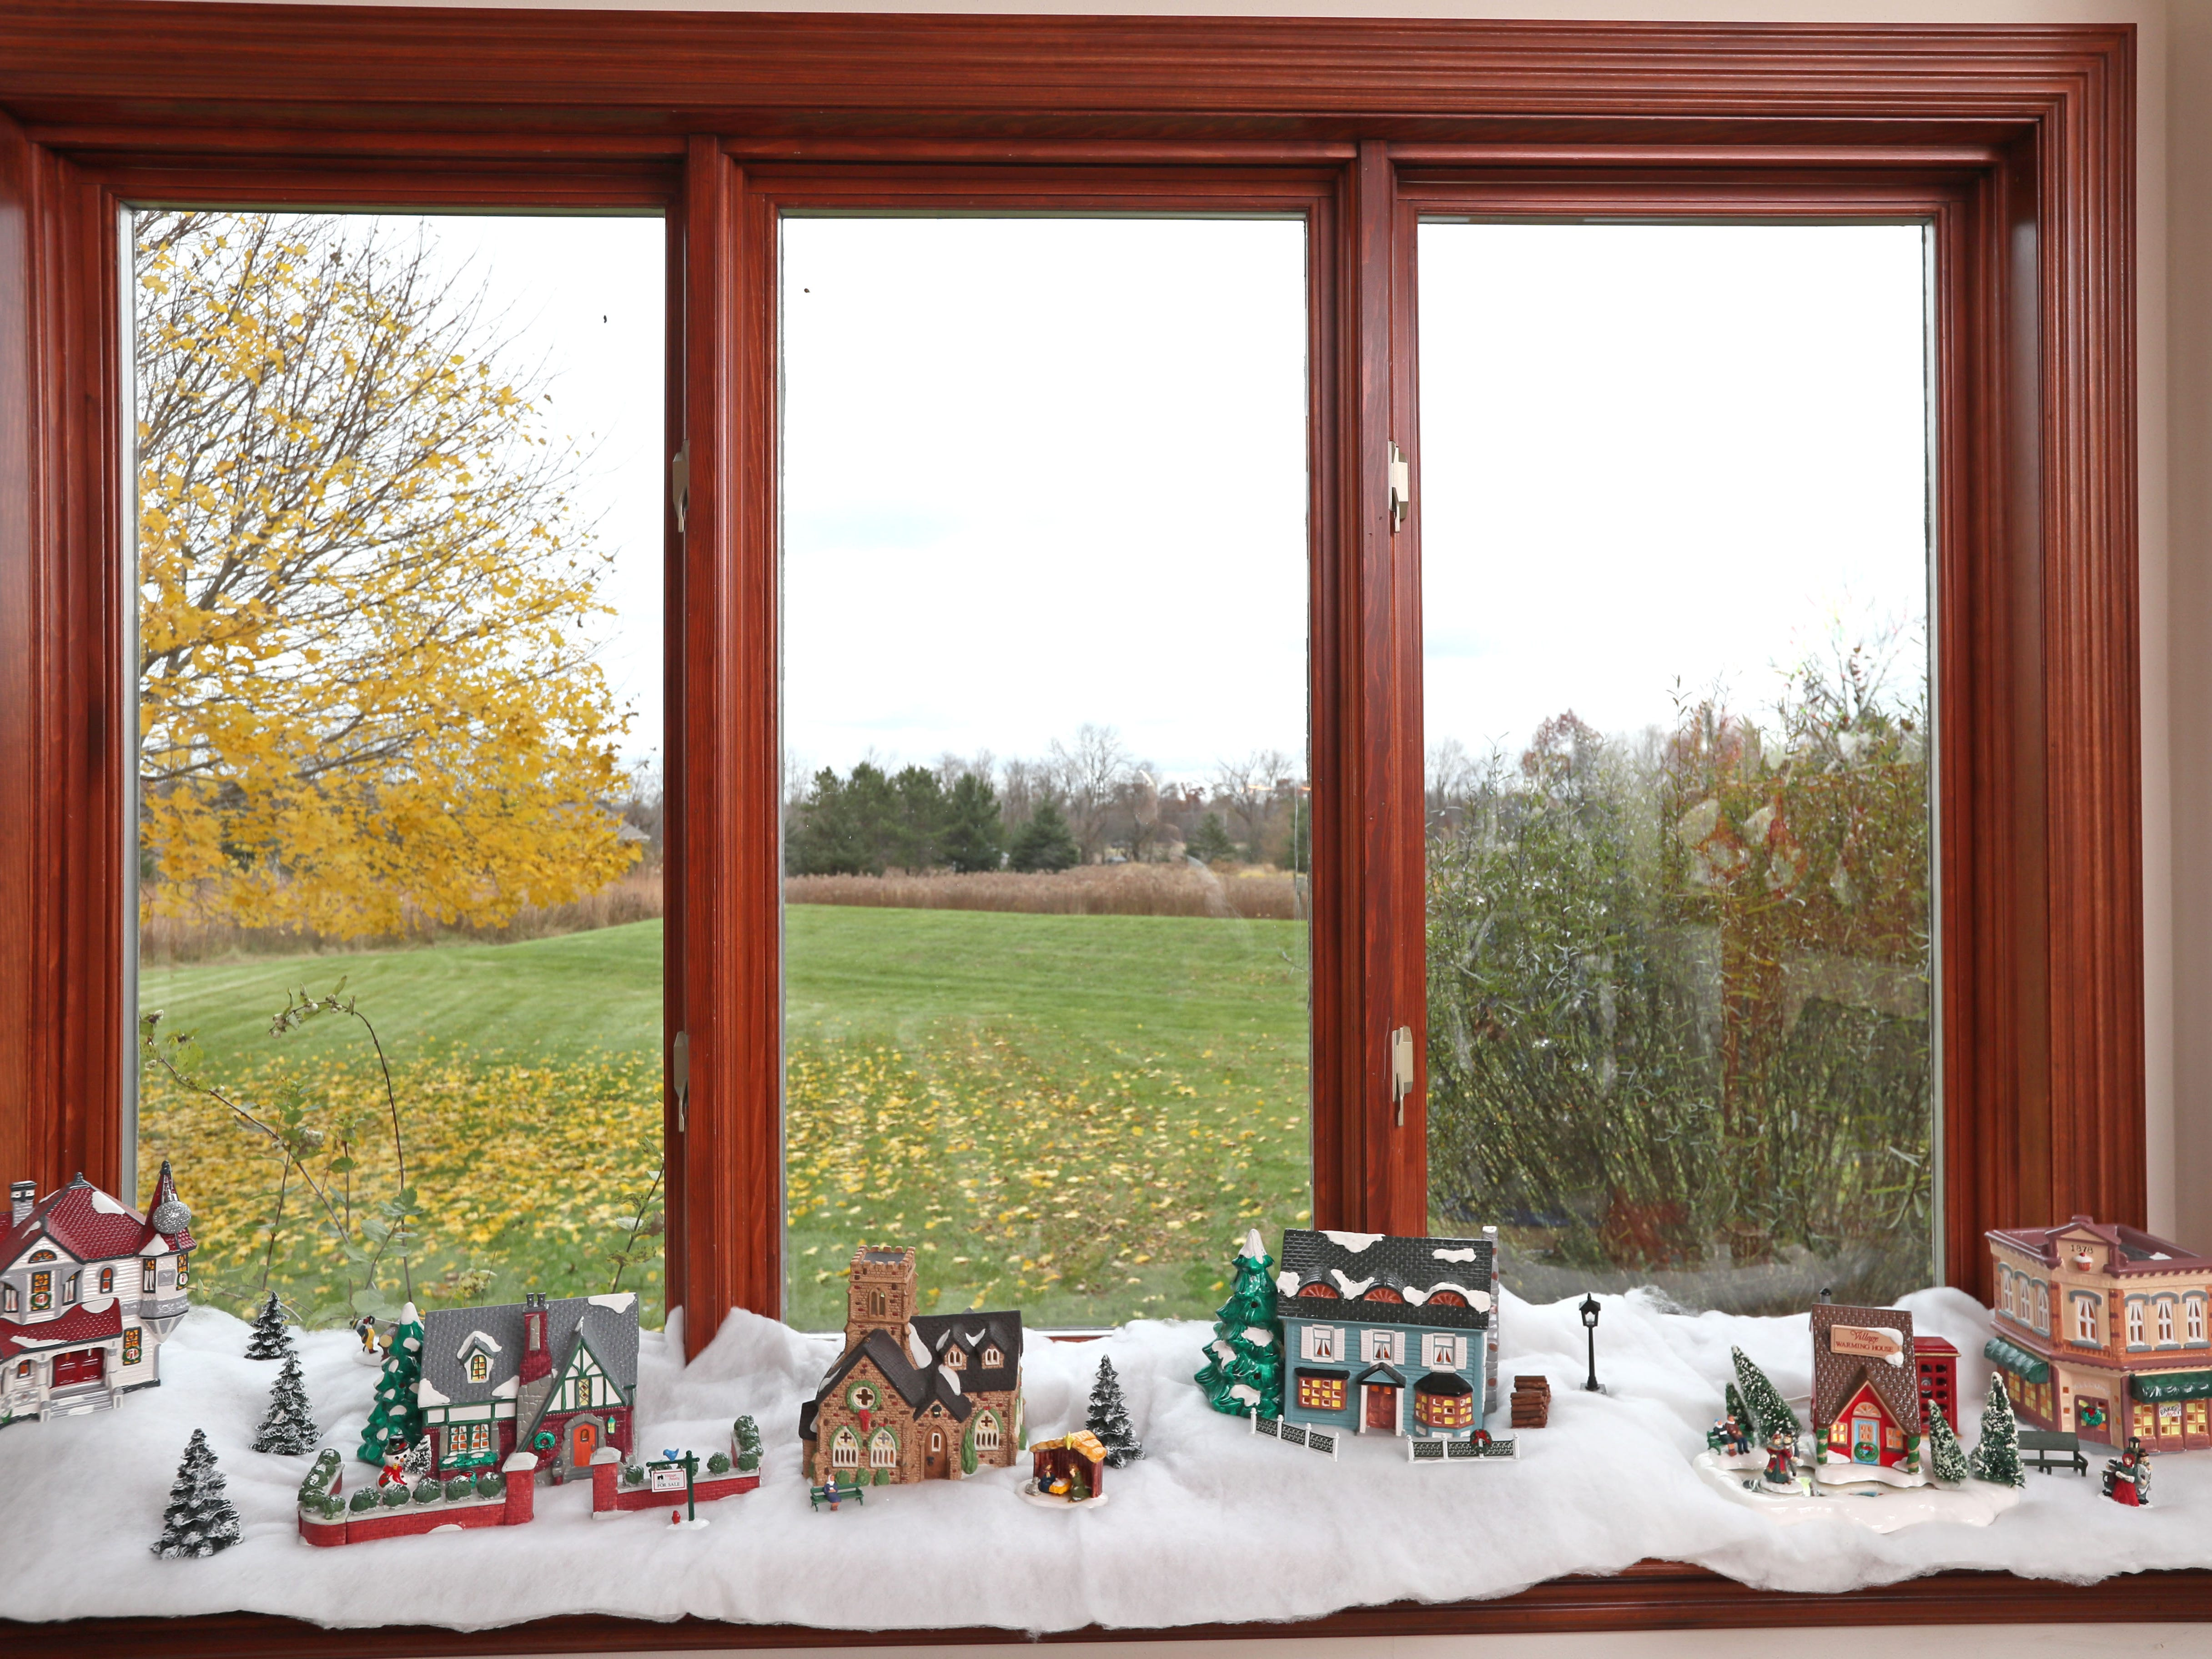 A winter Christmas village scene sits on a window ledge in the family room.